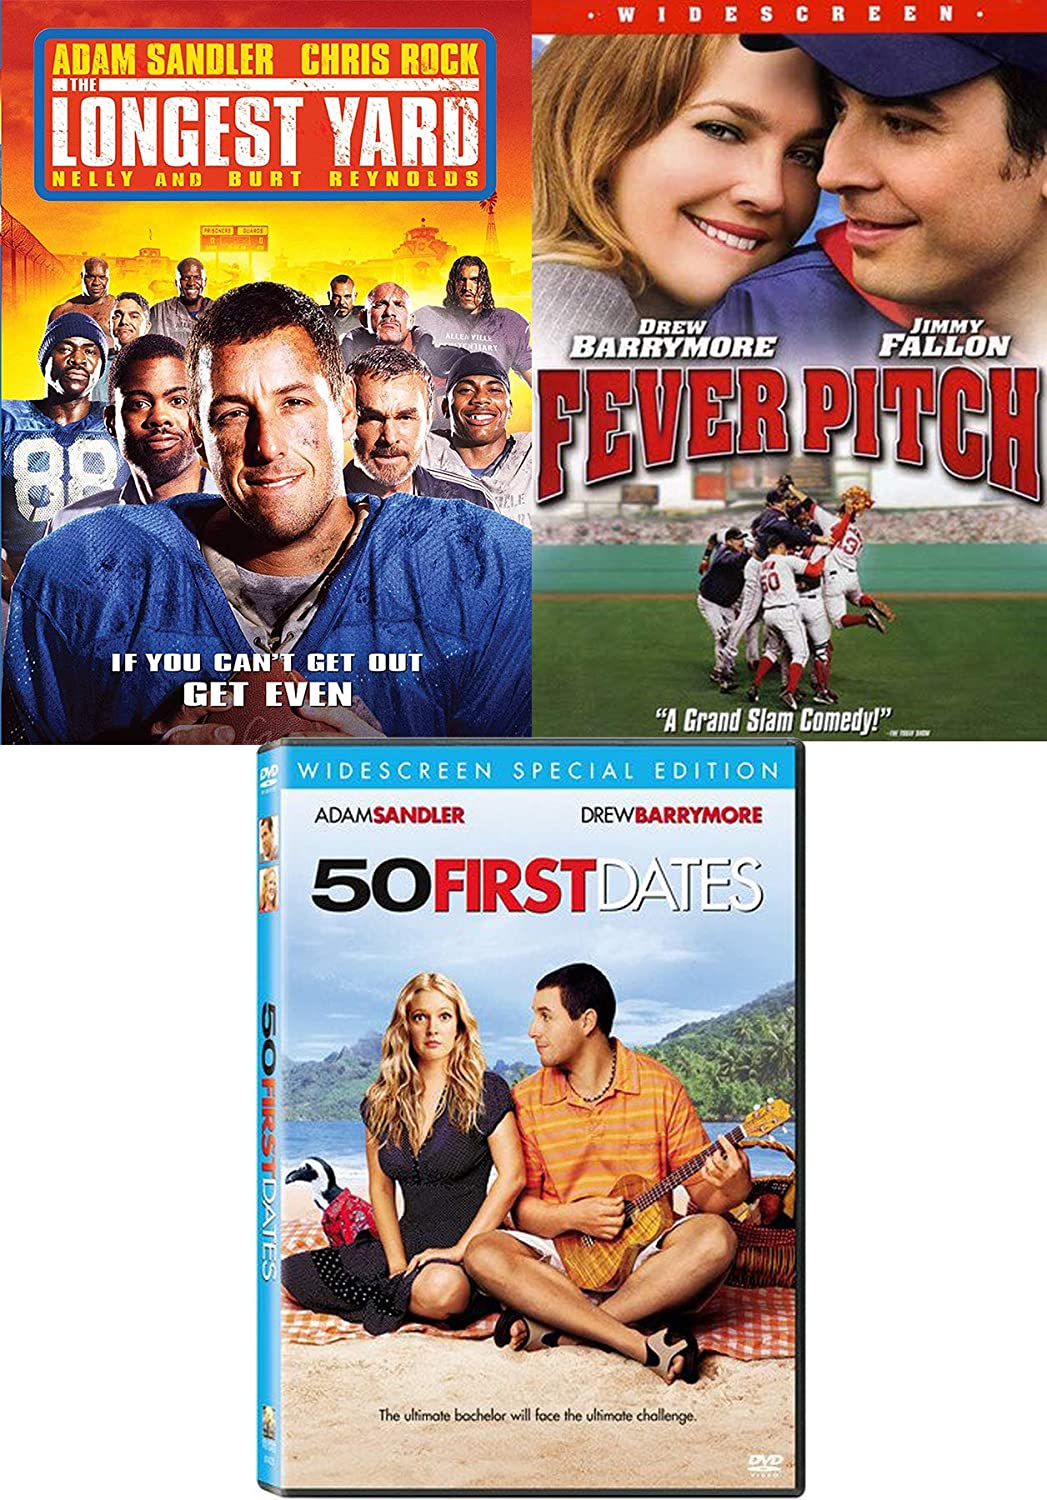 Game Love Adam Sandler Drew Barrymore 50 First Dates Fever Pitch Baseball Football Longest Yard Comedy Triple Feature Bundle Movie Collection 3 Dvd Set Adam Sandler Drew Barrymore Burt